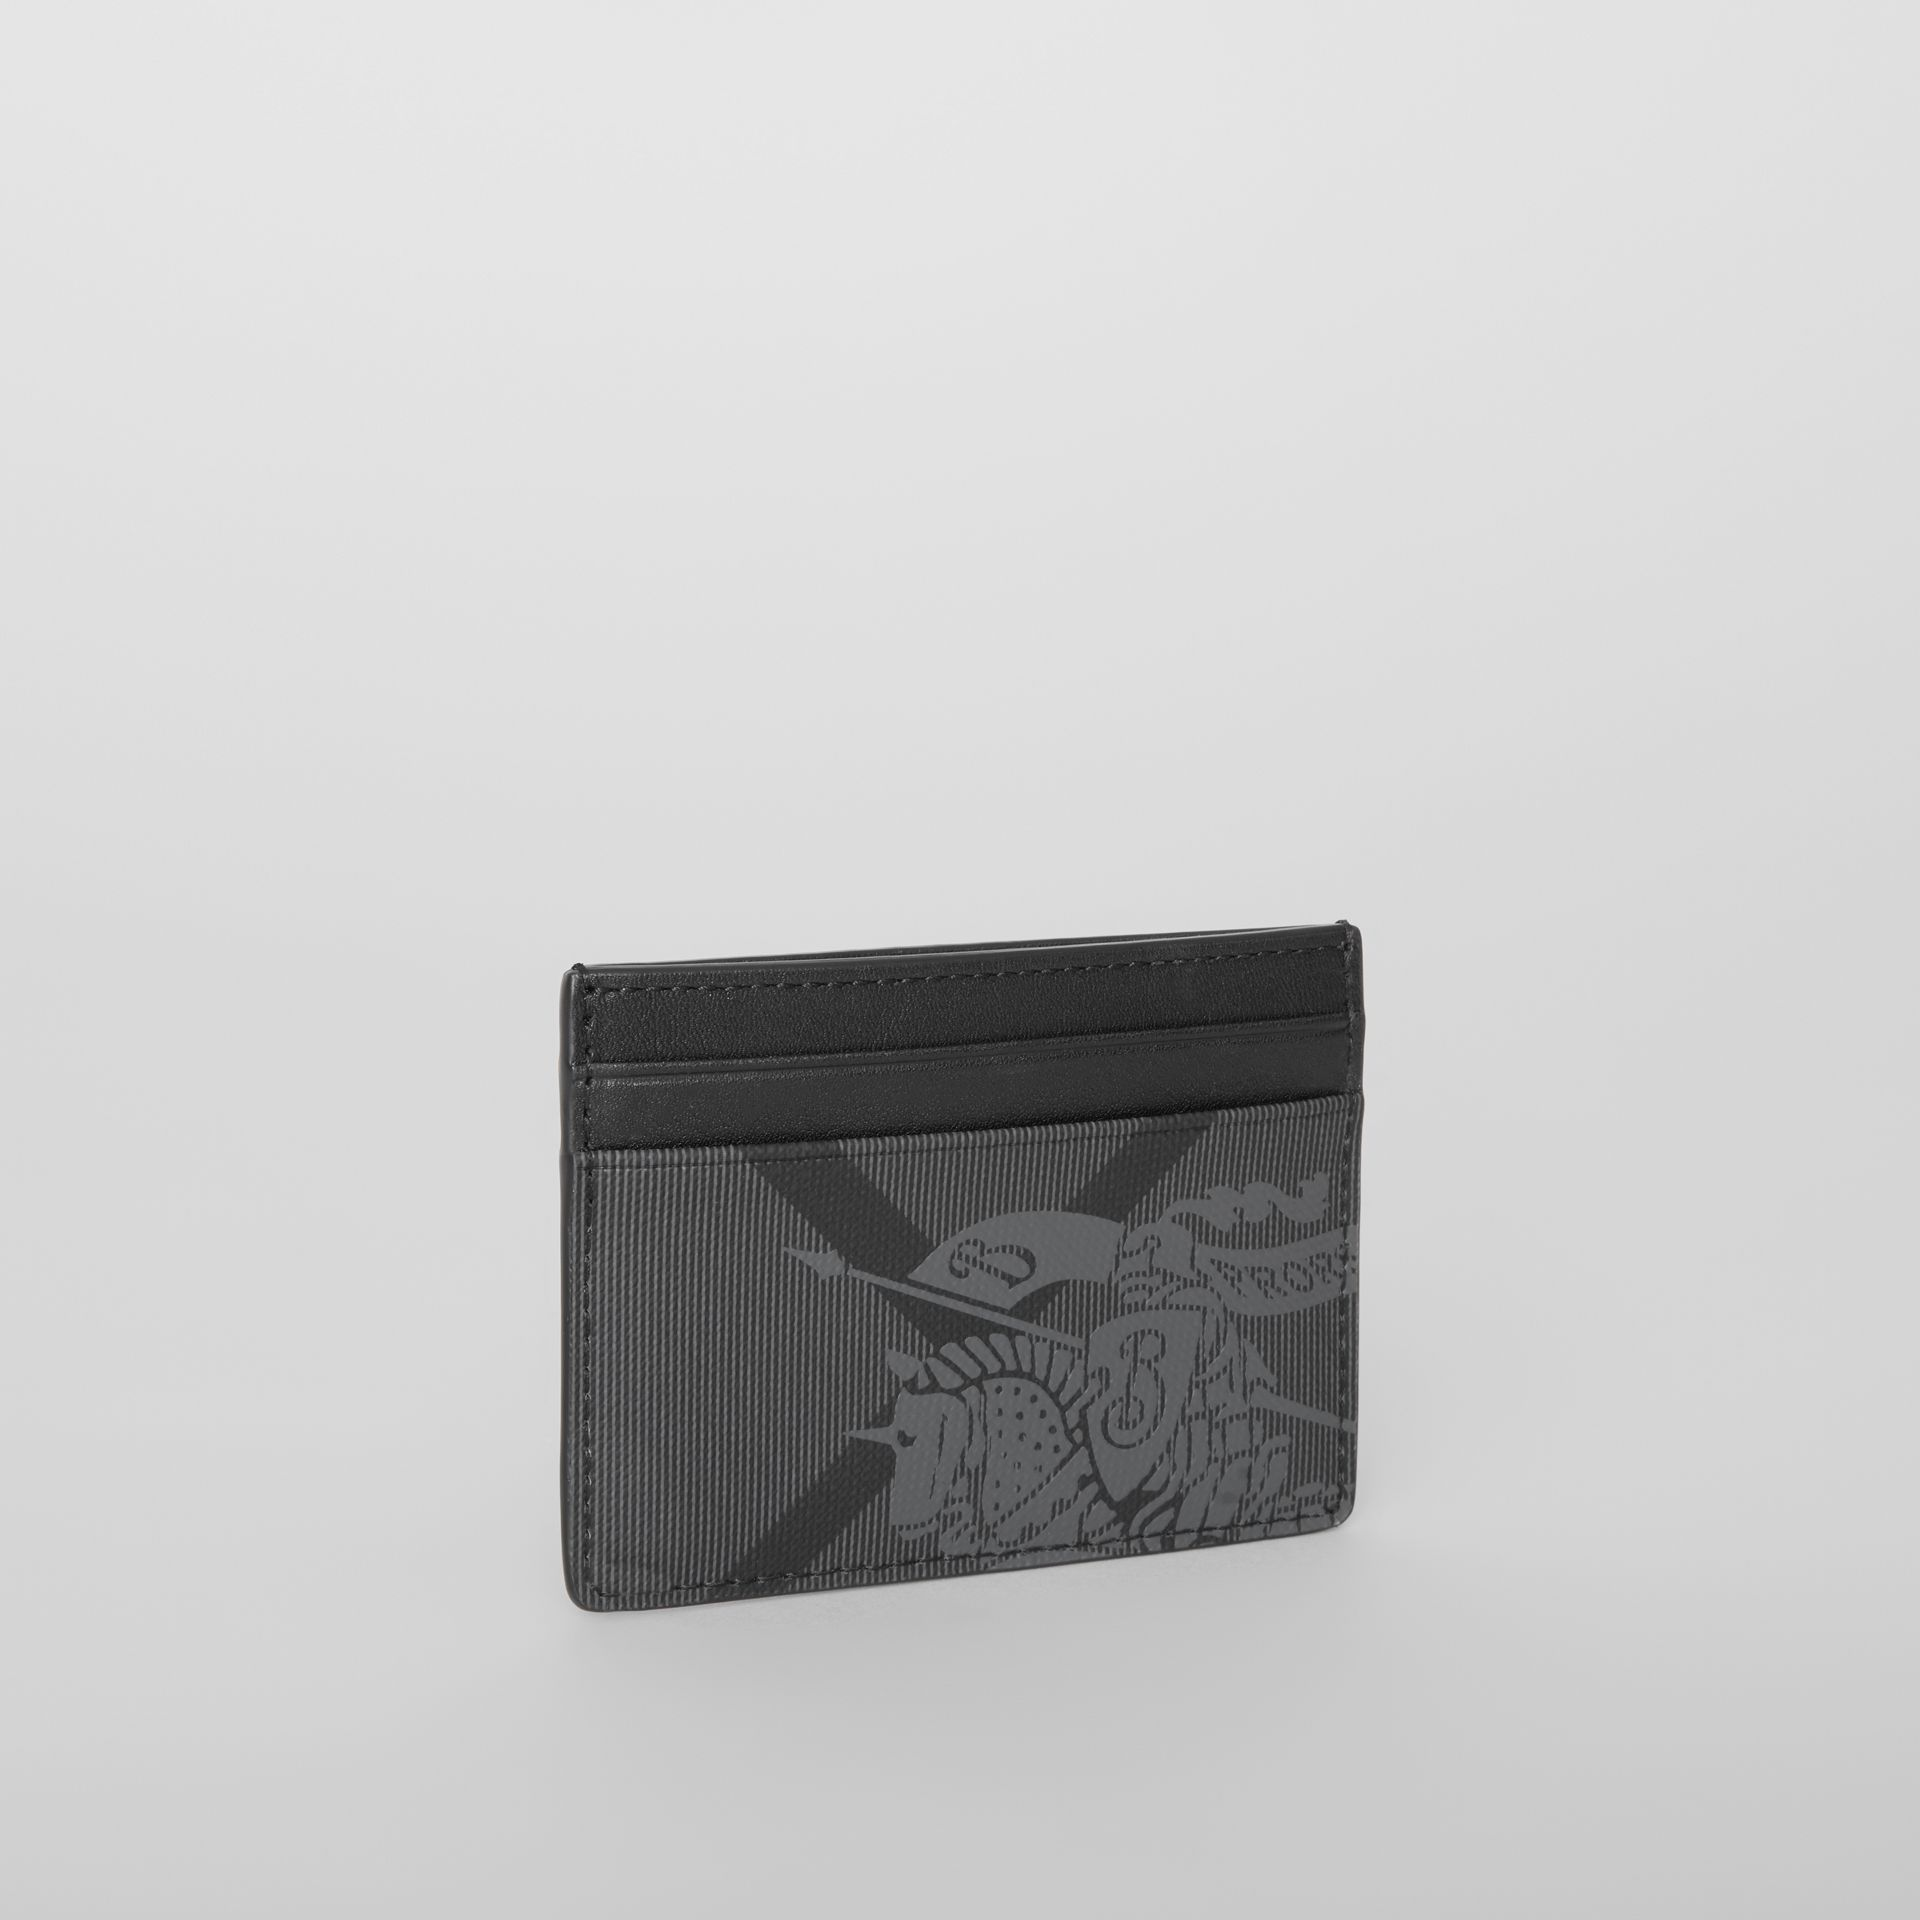 EKD London Check and Leather Card Case in Charcoal/black - Men | Burberry Singapore - gallery image 3